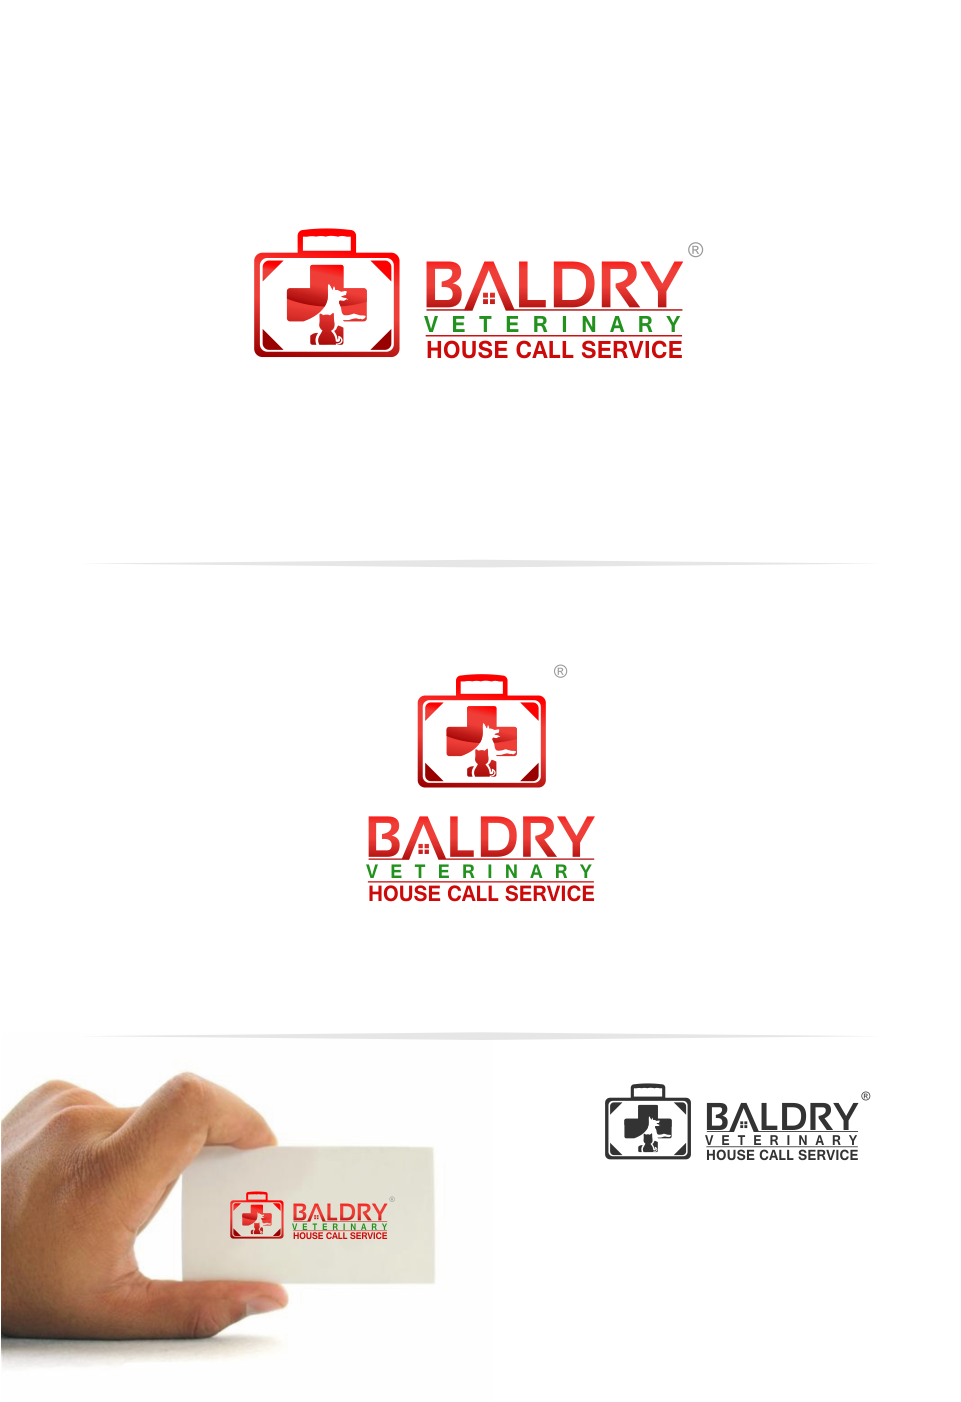 Logo Design by Mitchnick Sunardi - Entry No. 71 in the Logo Design Contest Captivating Logo Design for Baldry Veterinary House Call Service.